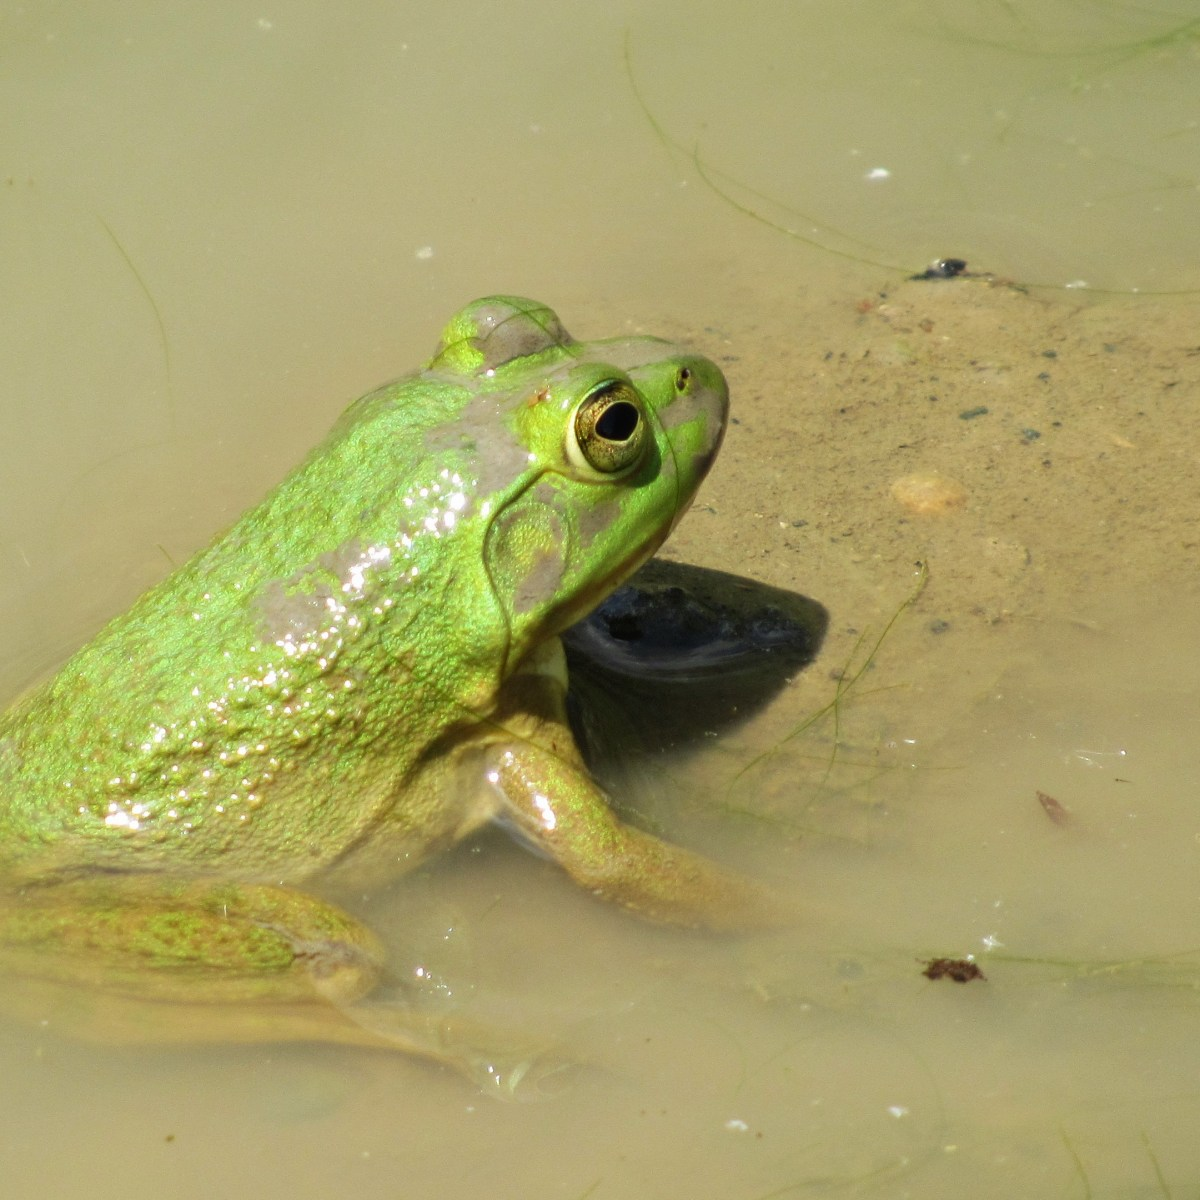 A close-up photo of a bullfrog in the water